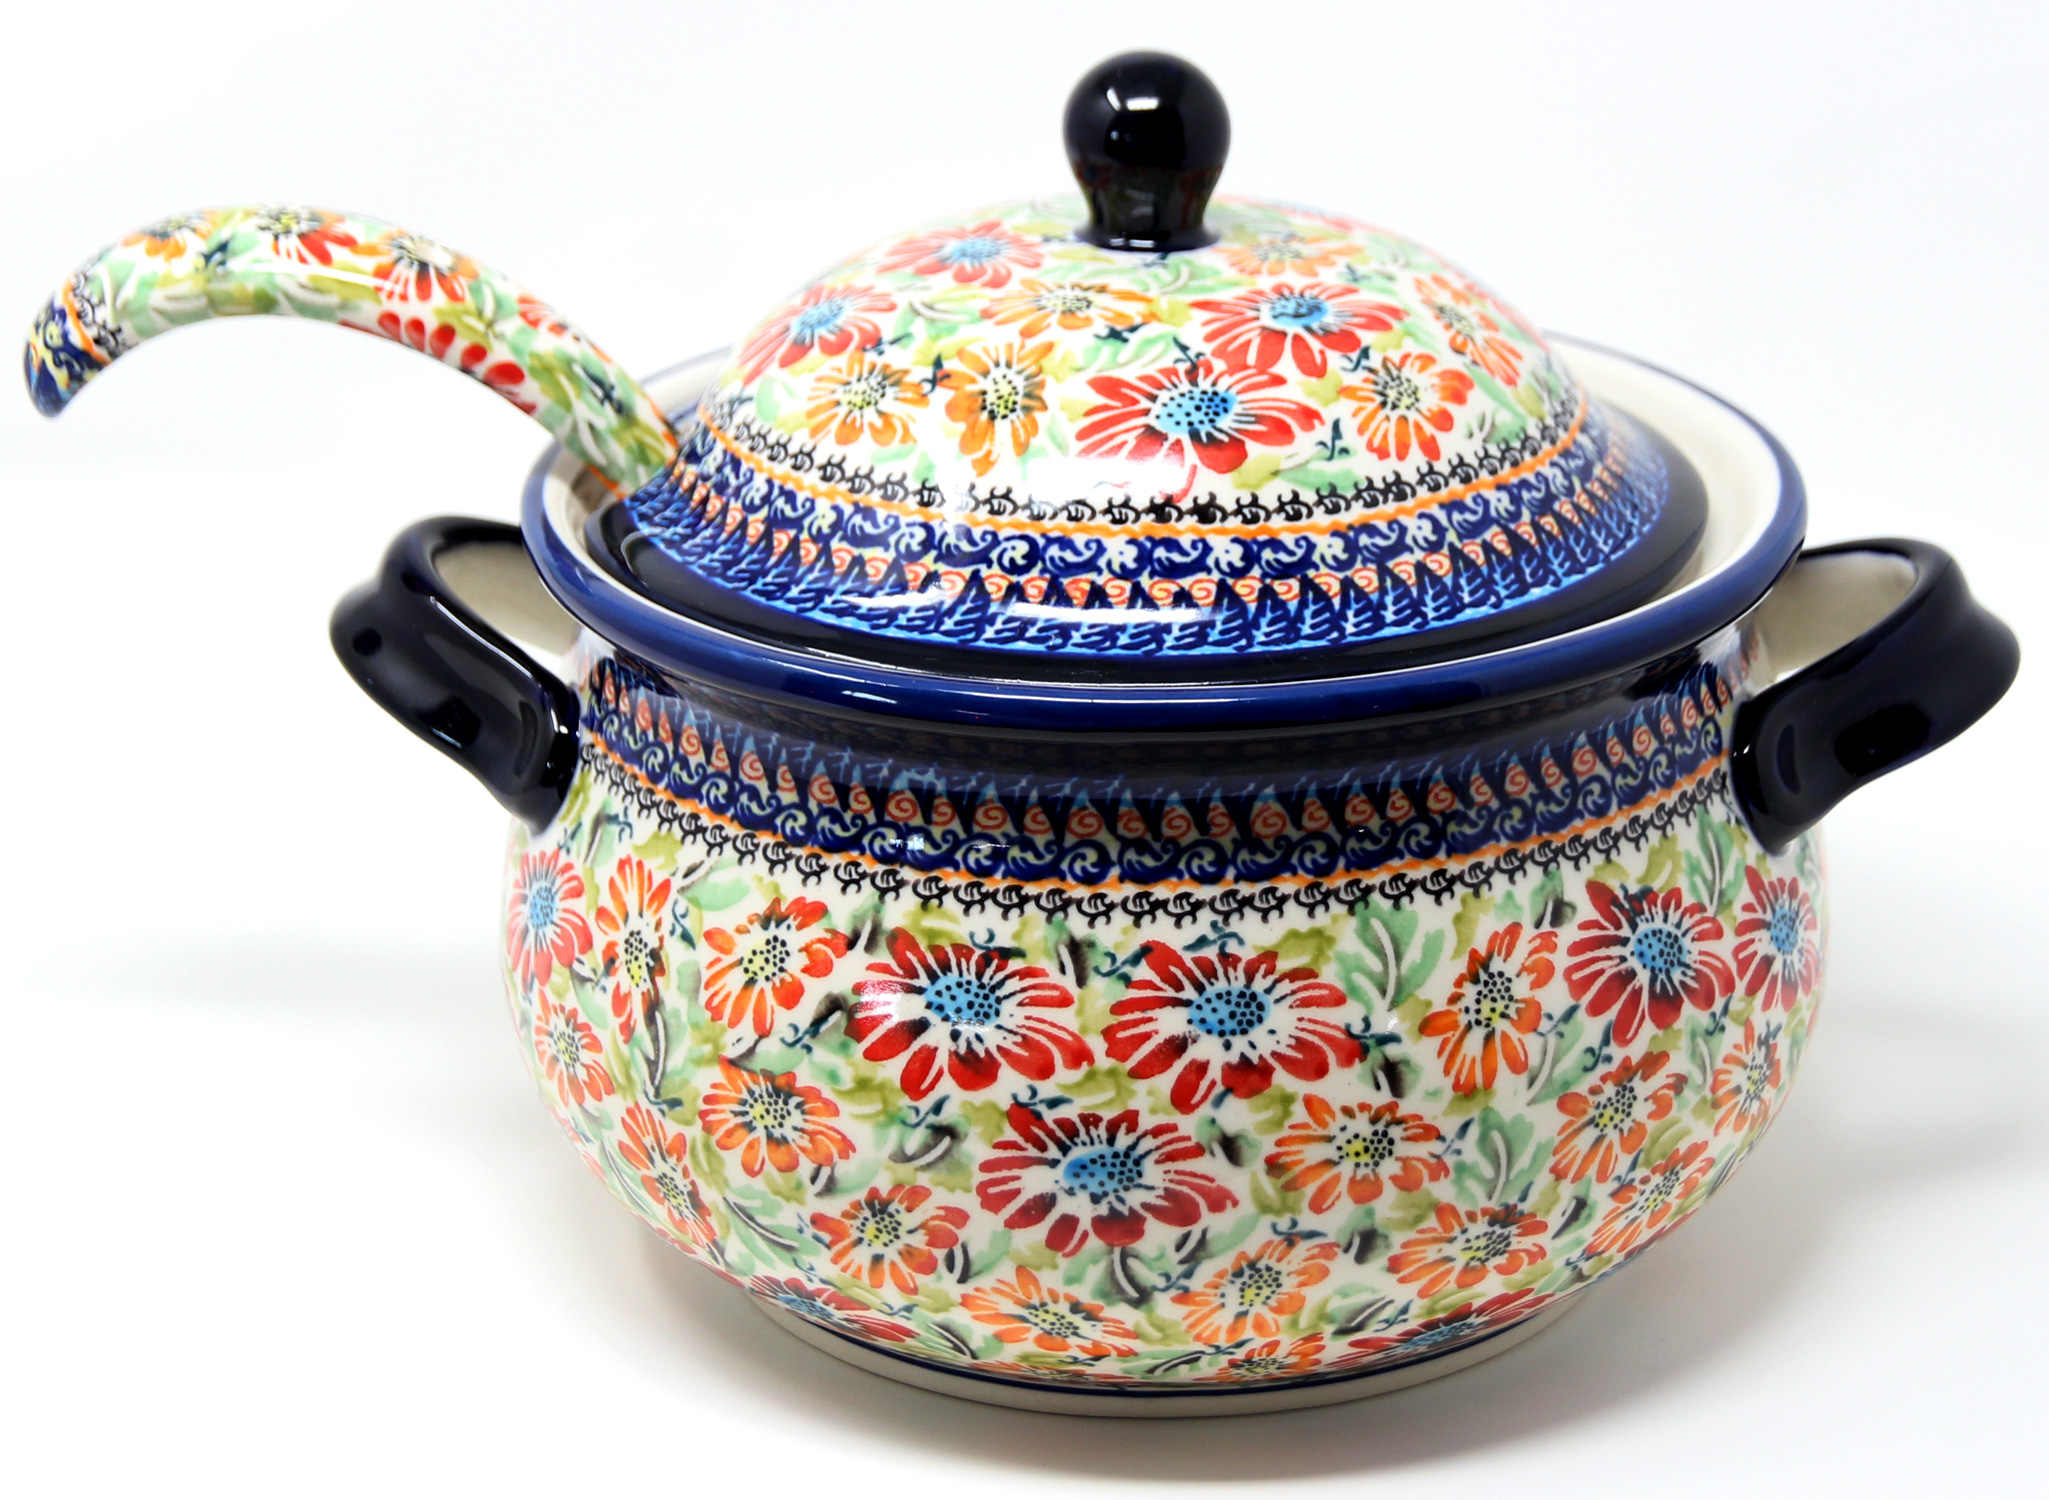 Polish Pottery Soup Tureen with Ladle in Floral Garden Unikat Pattern